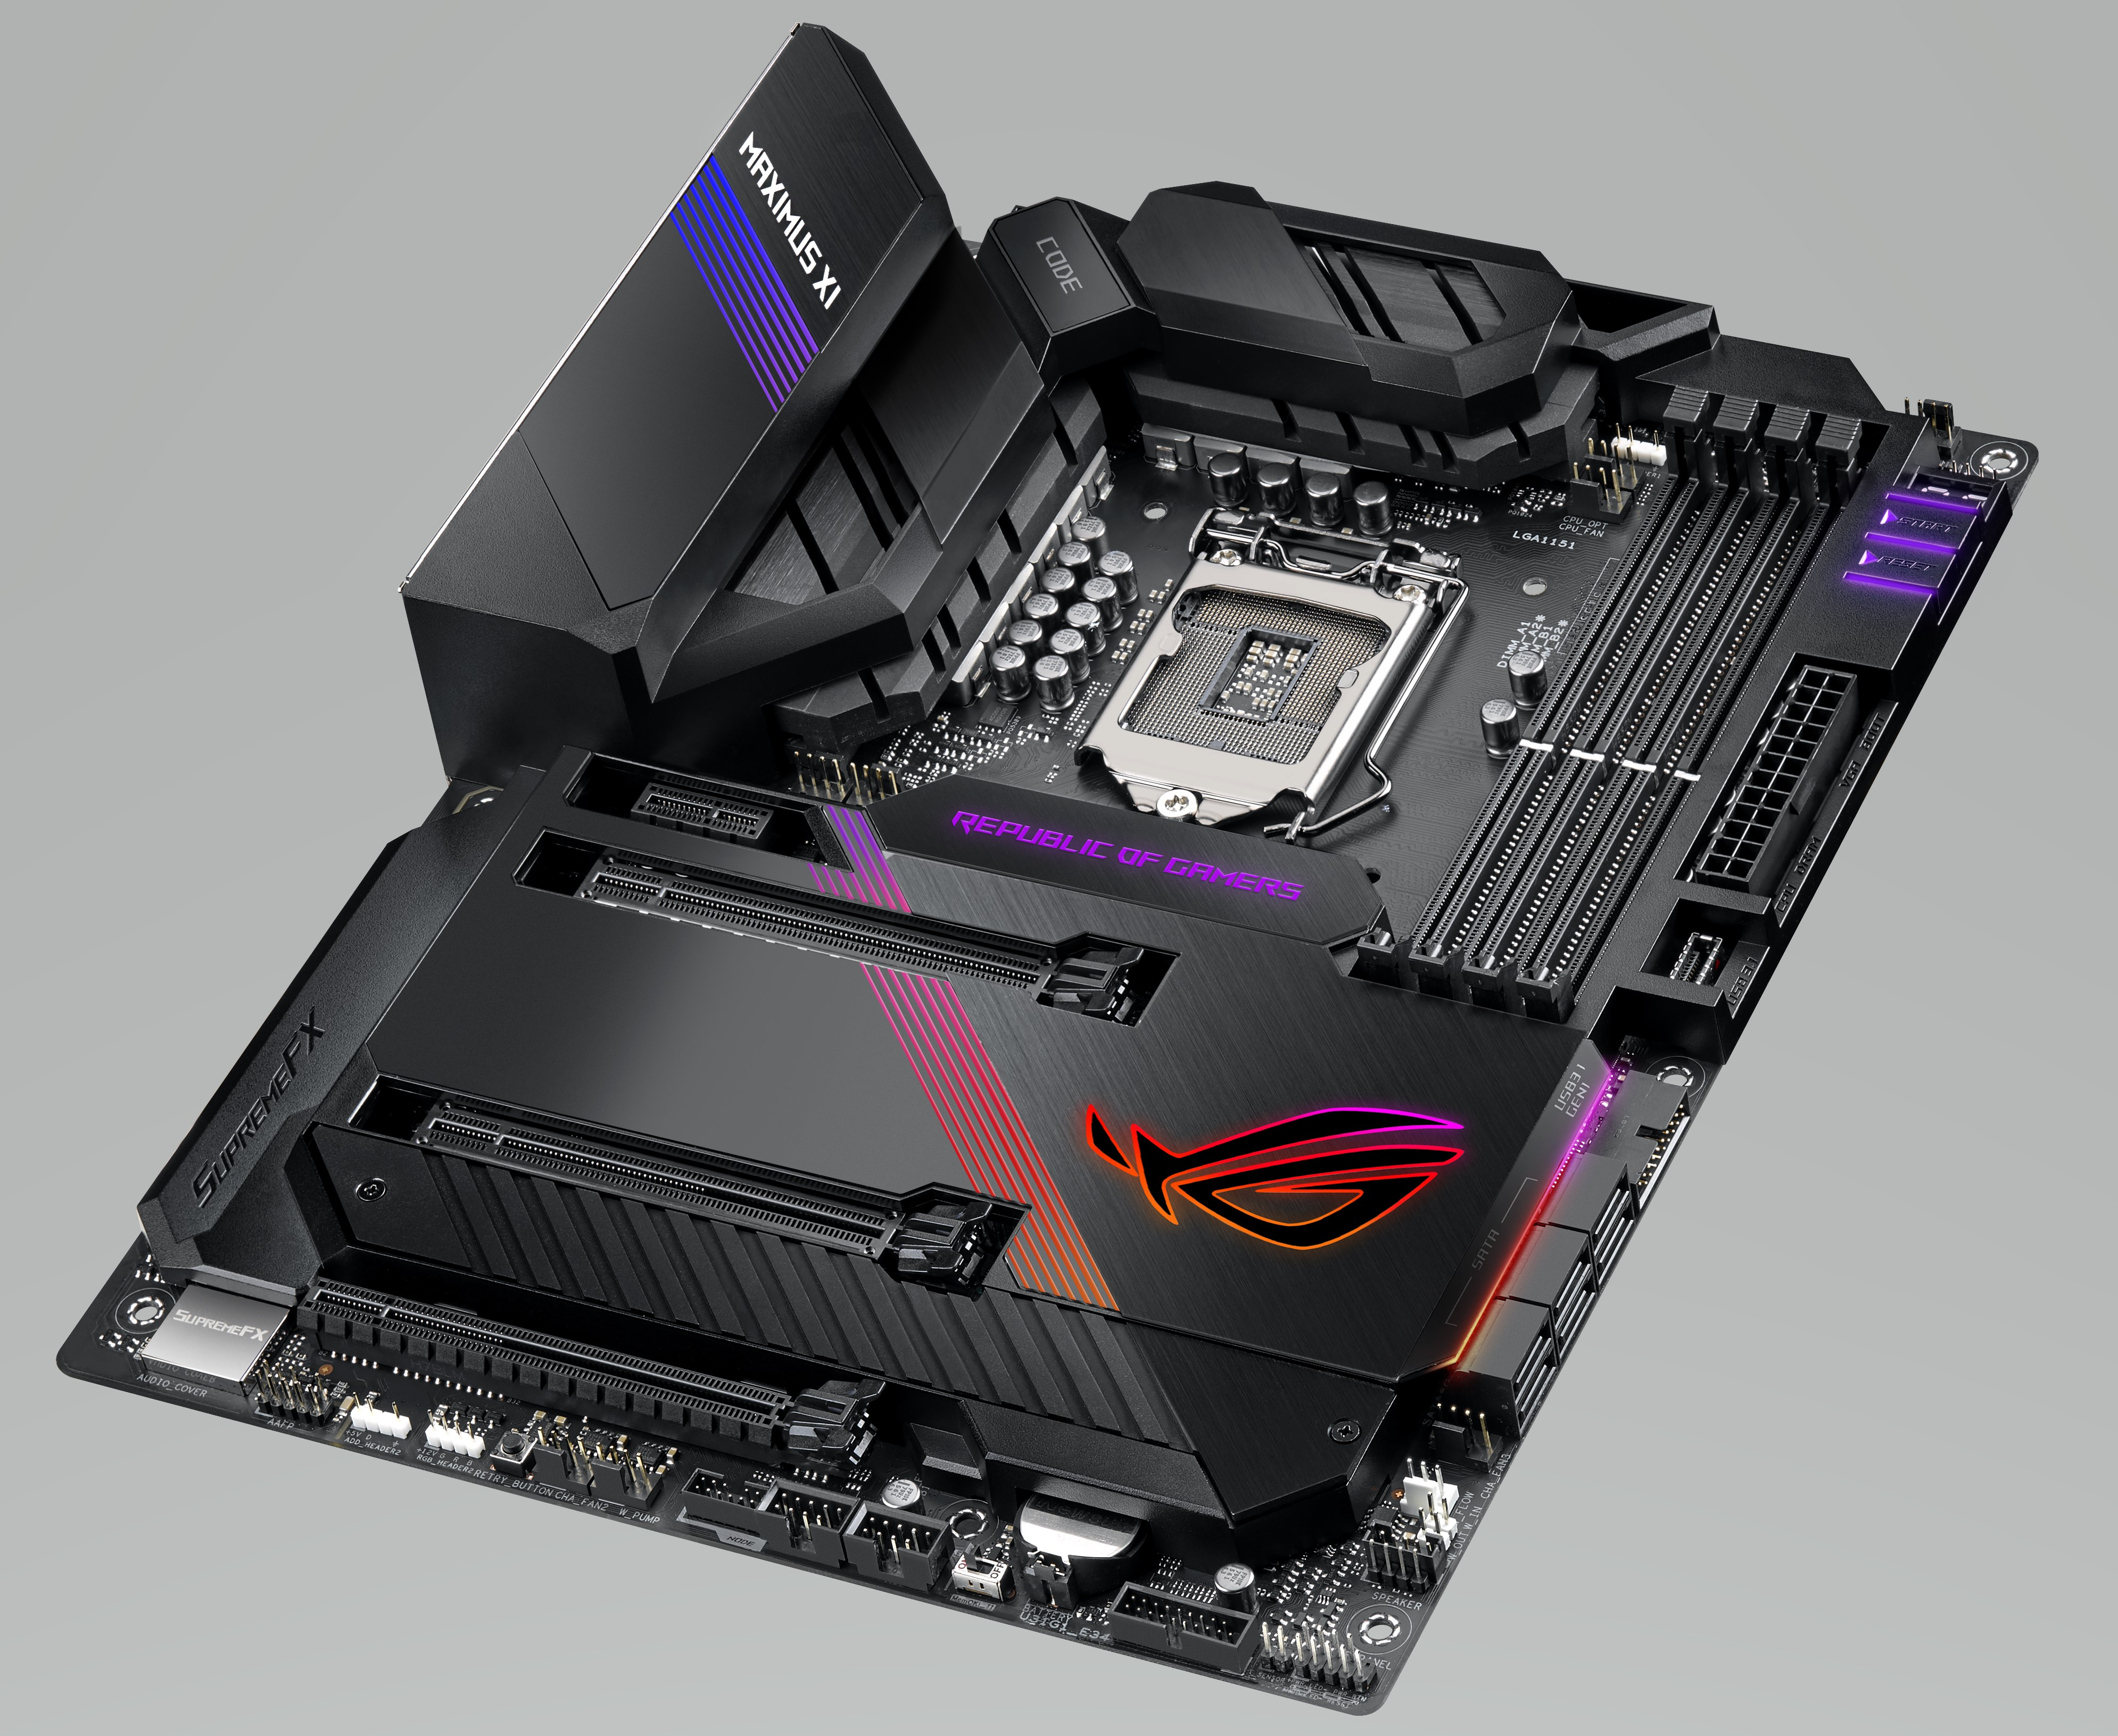 ASUS ROG Maximus XI Code - Intel Z390 Motherboard Overview